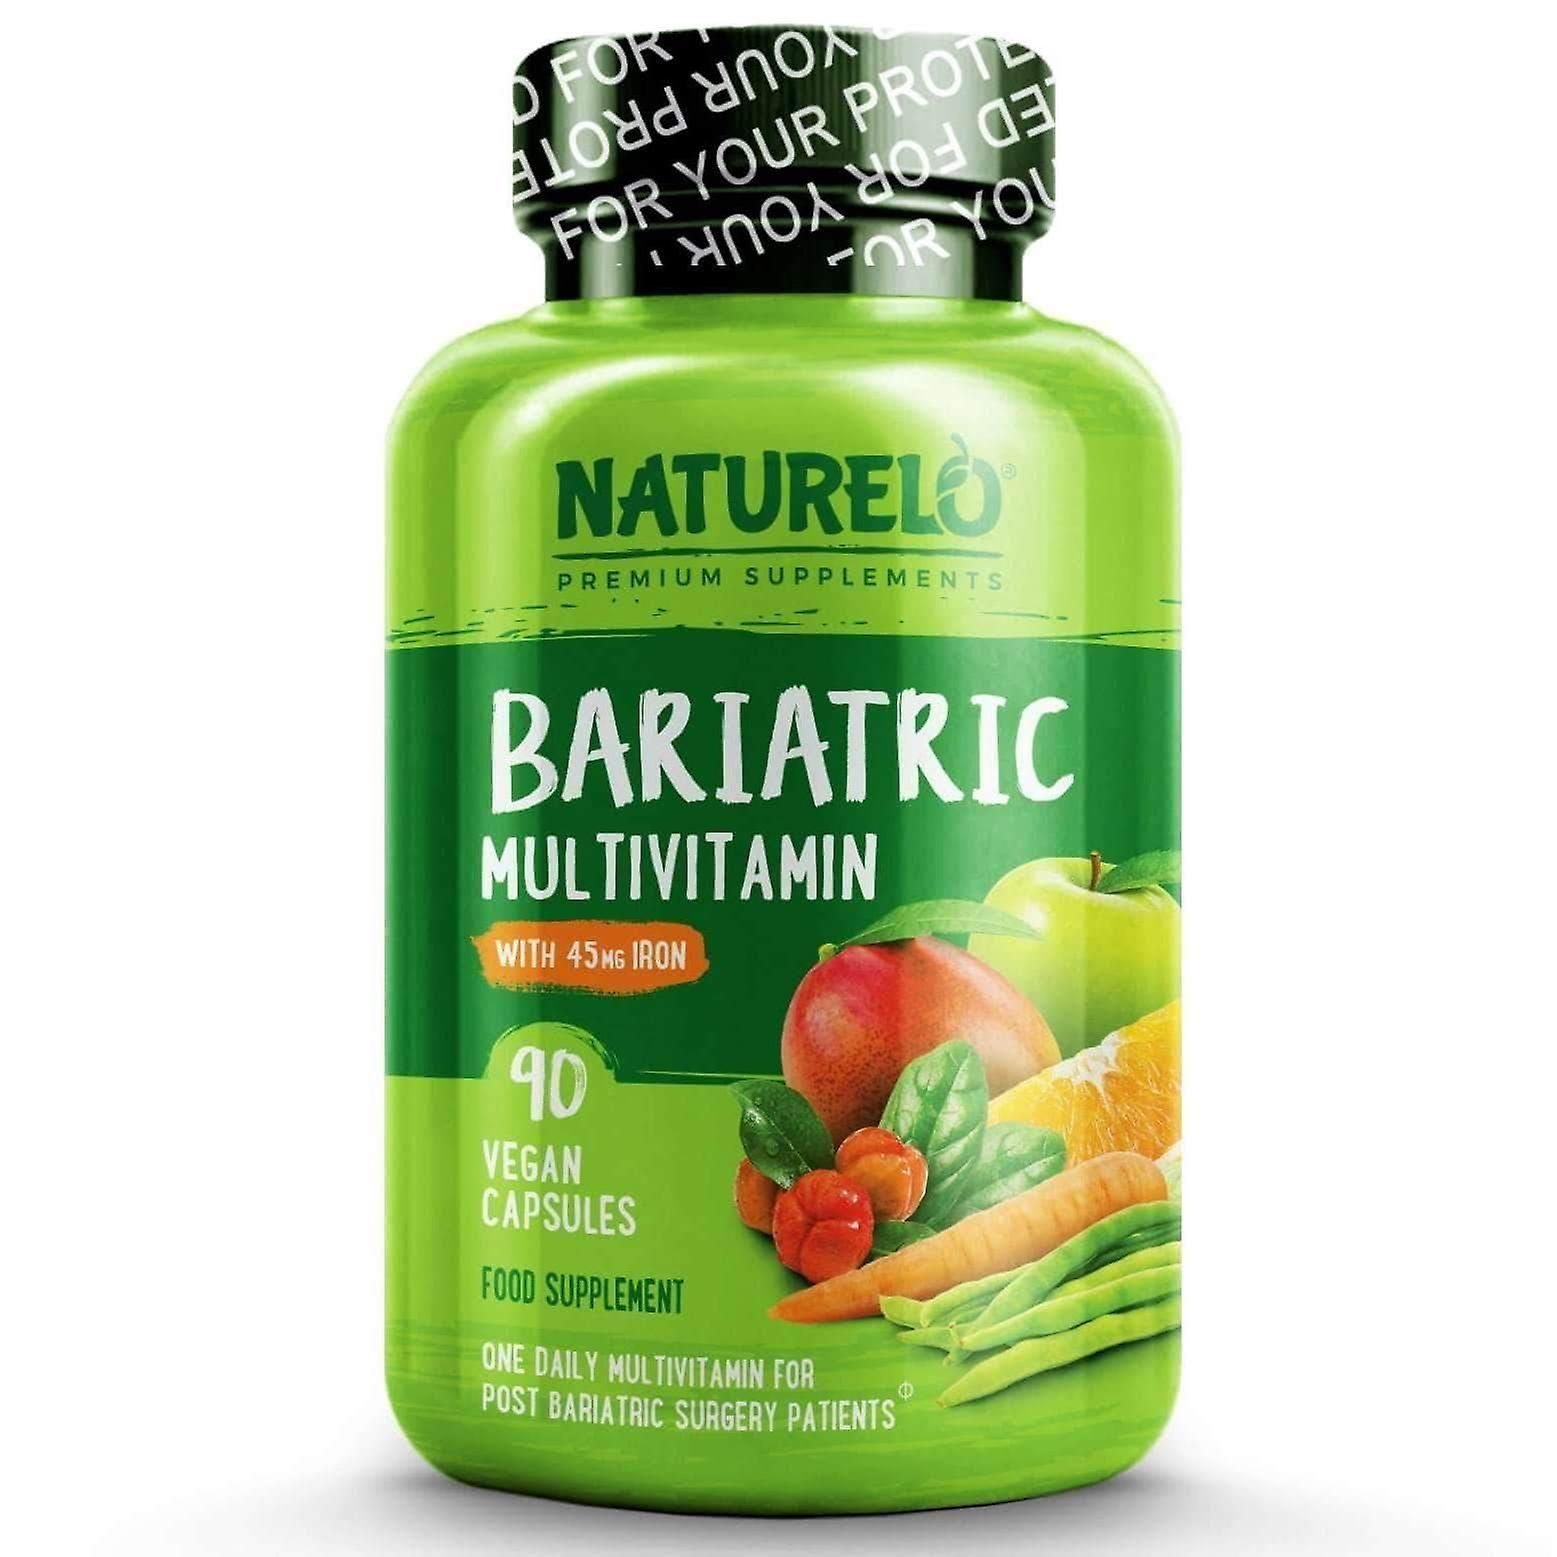 Bariatric multivitamin with natural vitamins, fruit extracts & extra iron